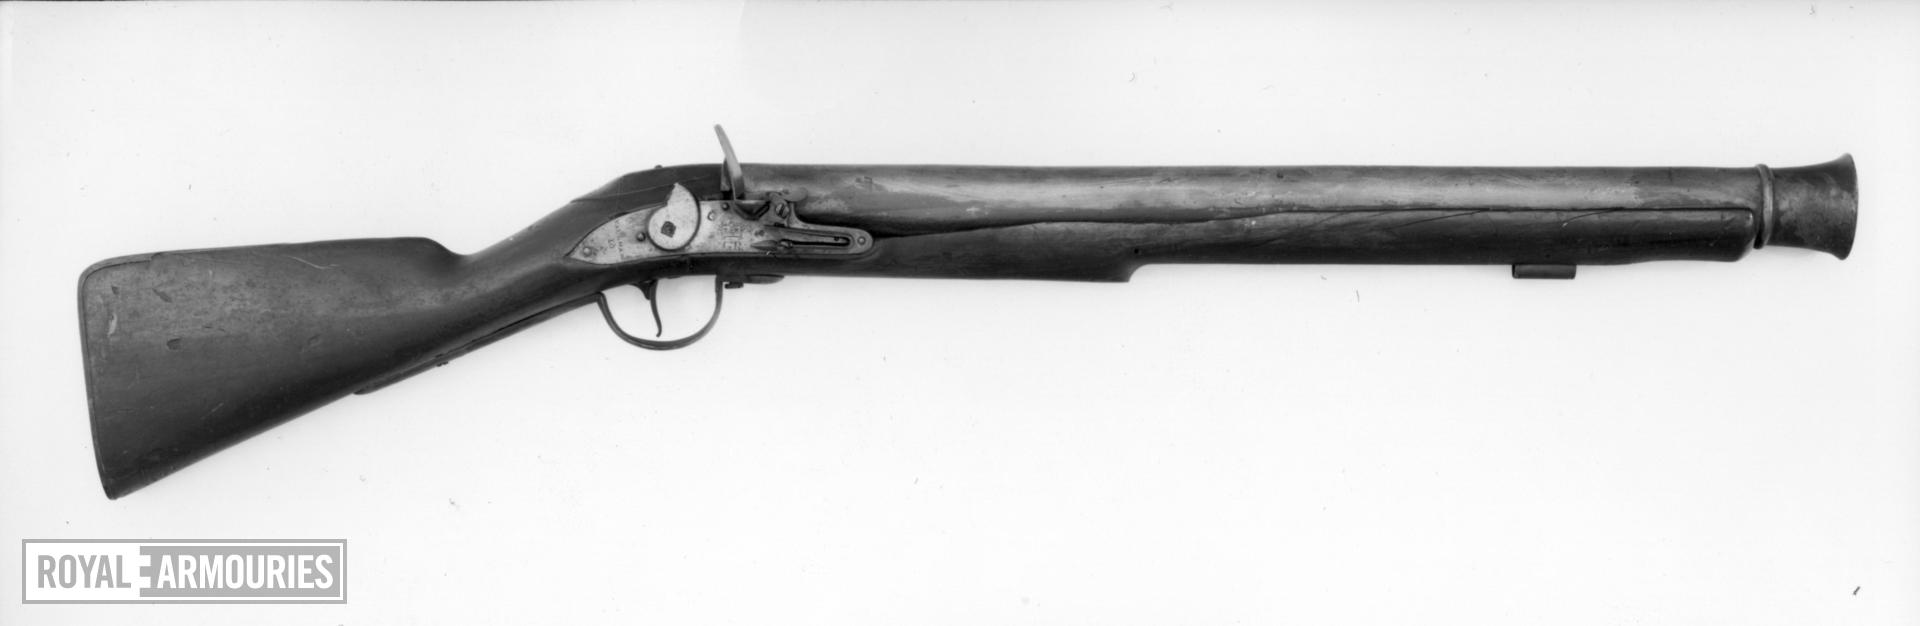 Flintlock military musketoon Lock and stock dated 1720